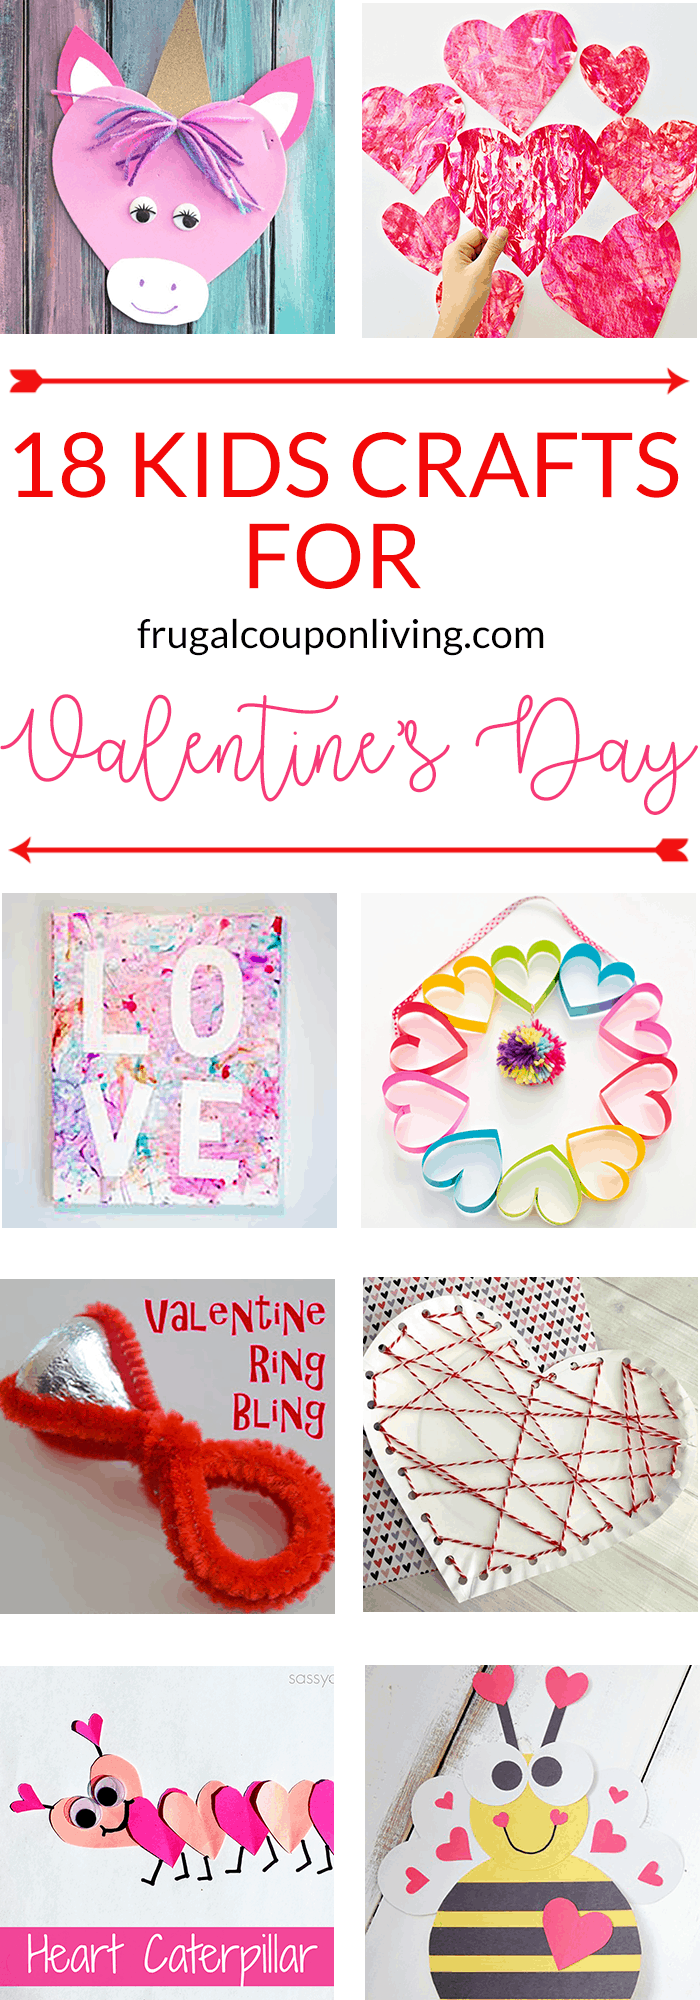 3 Home Decor Trends For Spring Brittany Stager: 18 Super Cute DIY Valentines Crafts For Kids